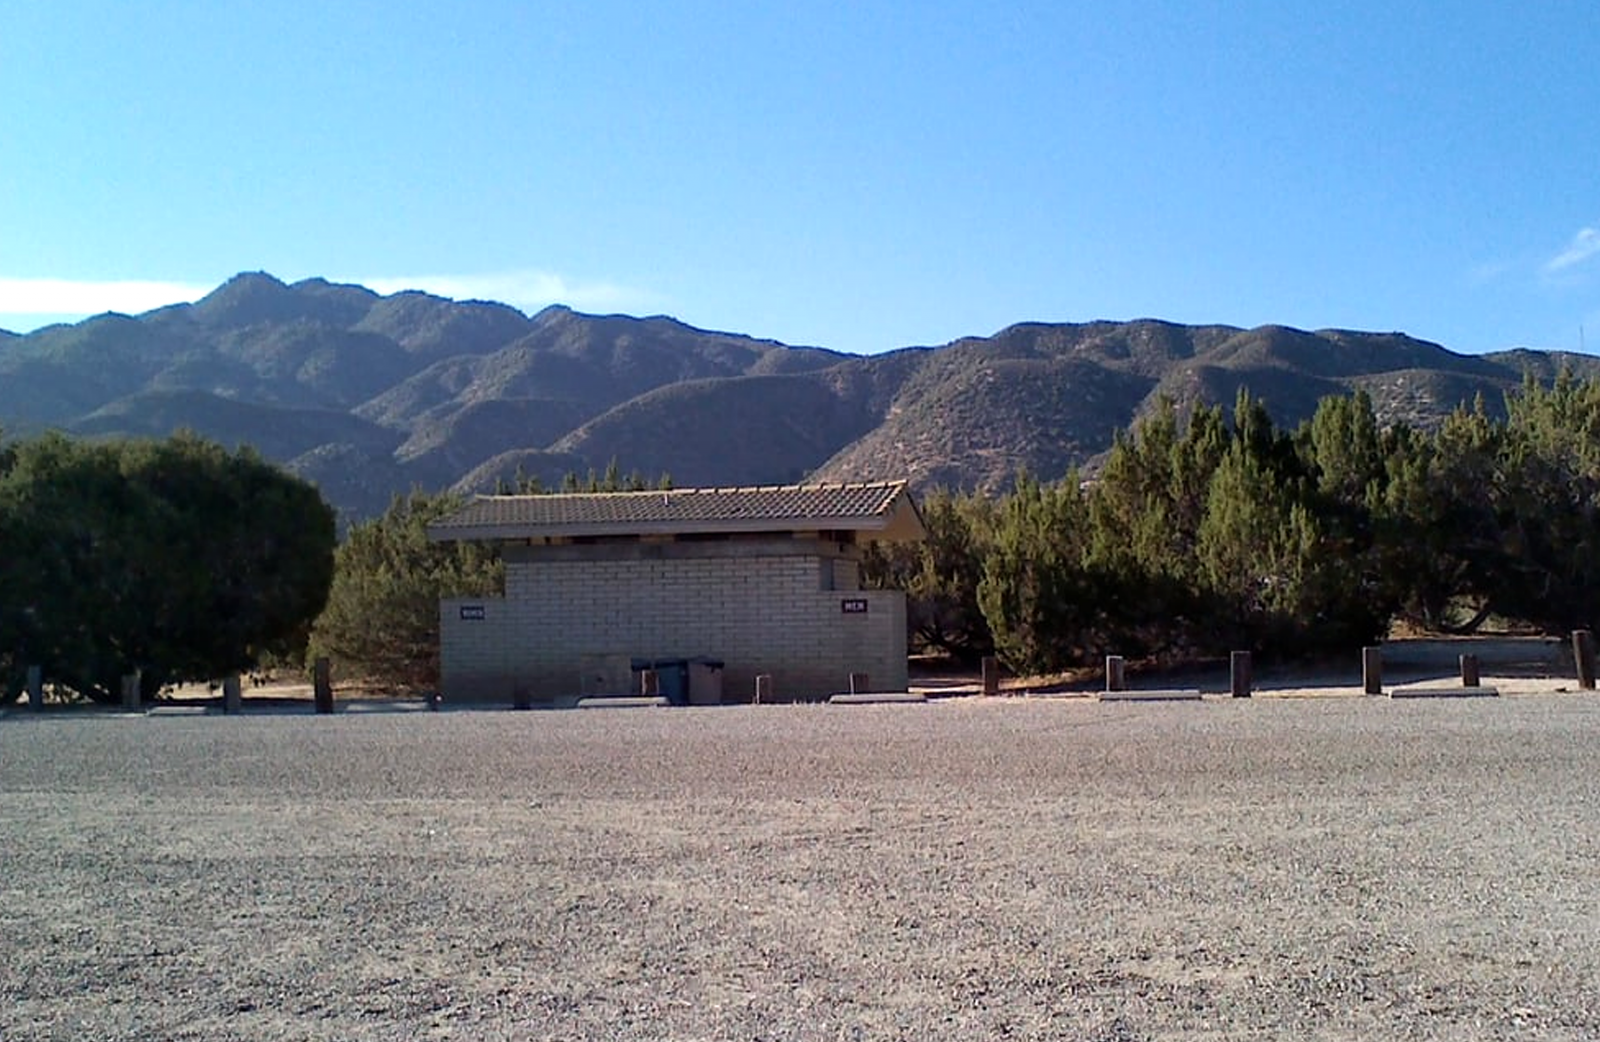 The restrooms at Mojave River Forks. A concrete building sitting on gravel.